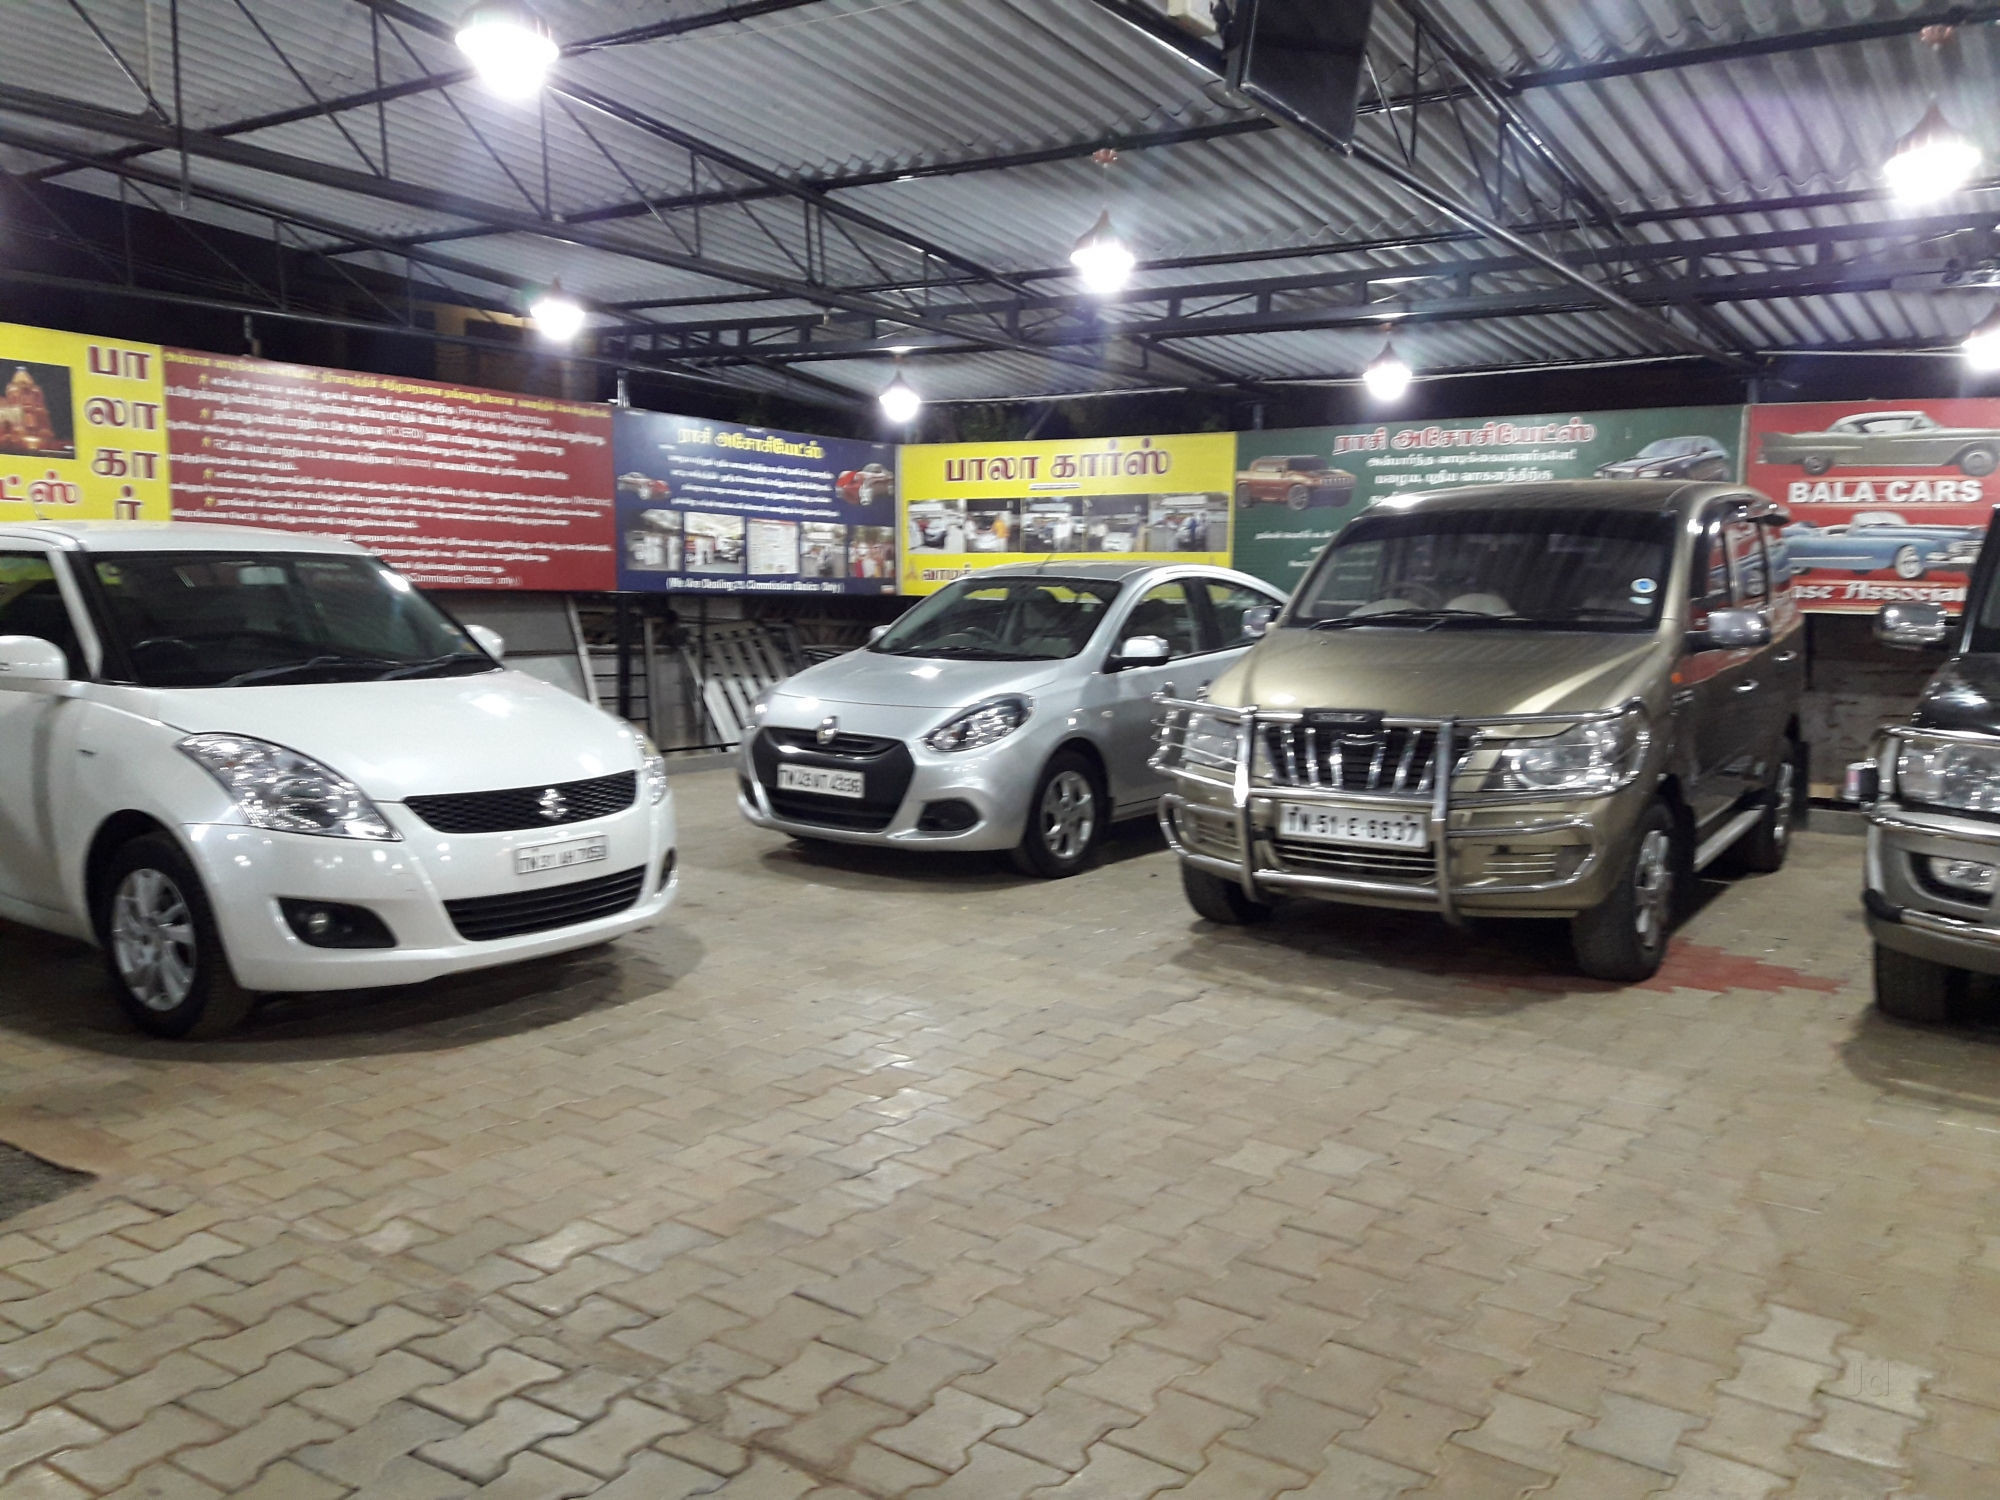 used car inventory mobile al inspirational bala cars second hand car dealers in thanjavur justdial